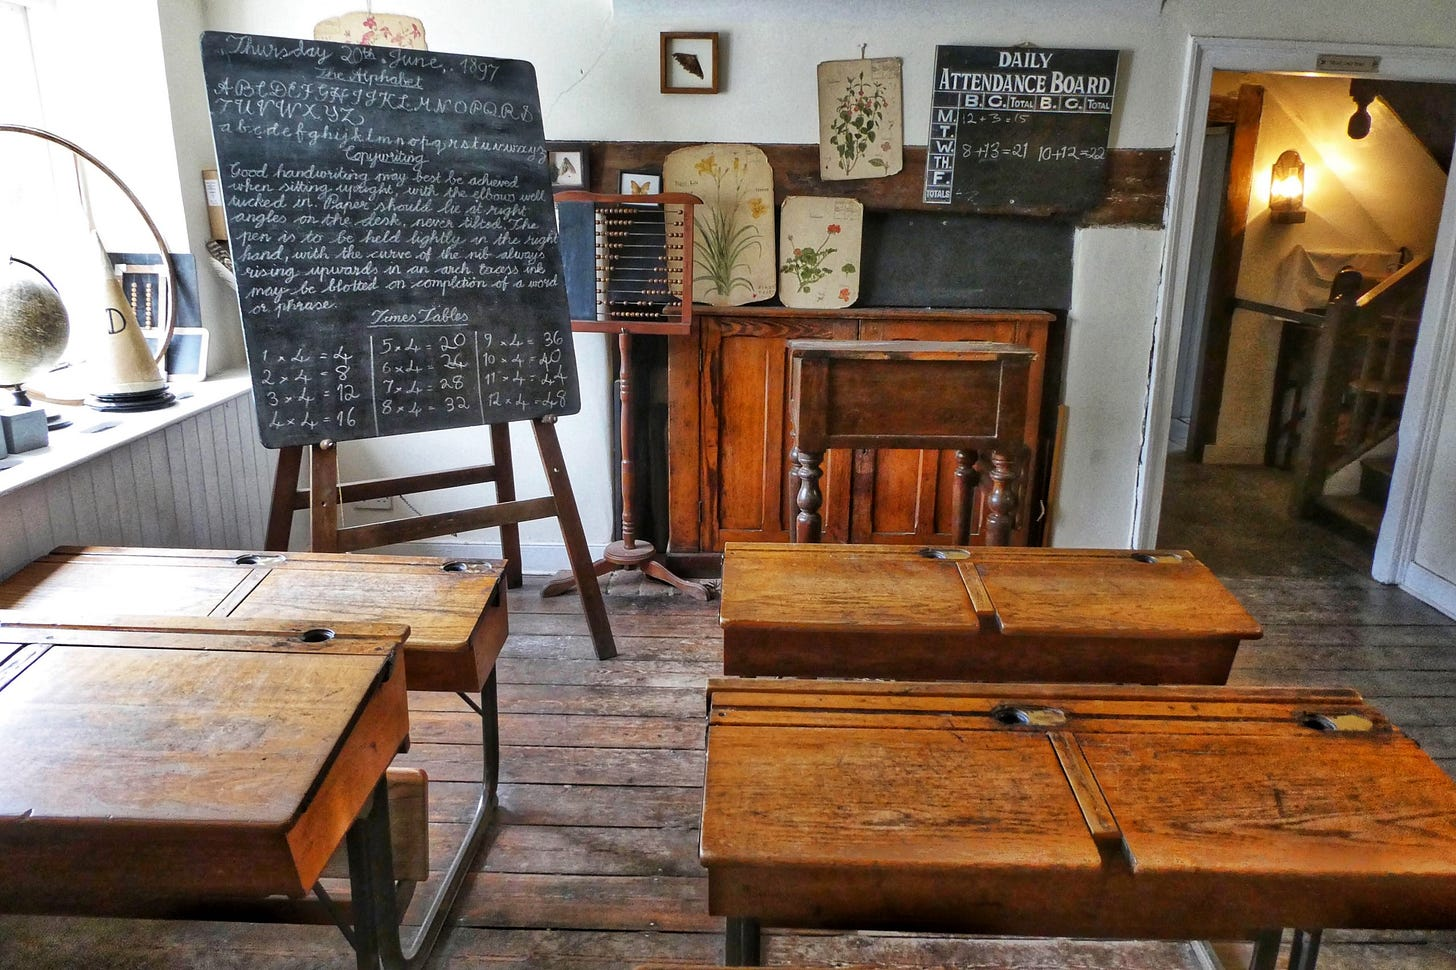 image of an old classroom for article by Larry G. Maguire